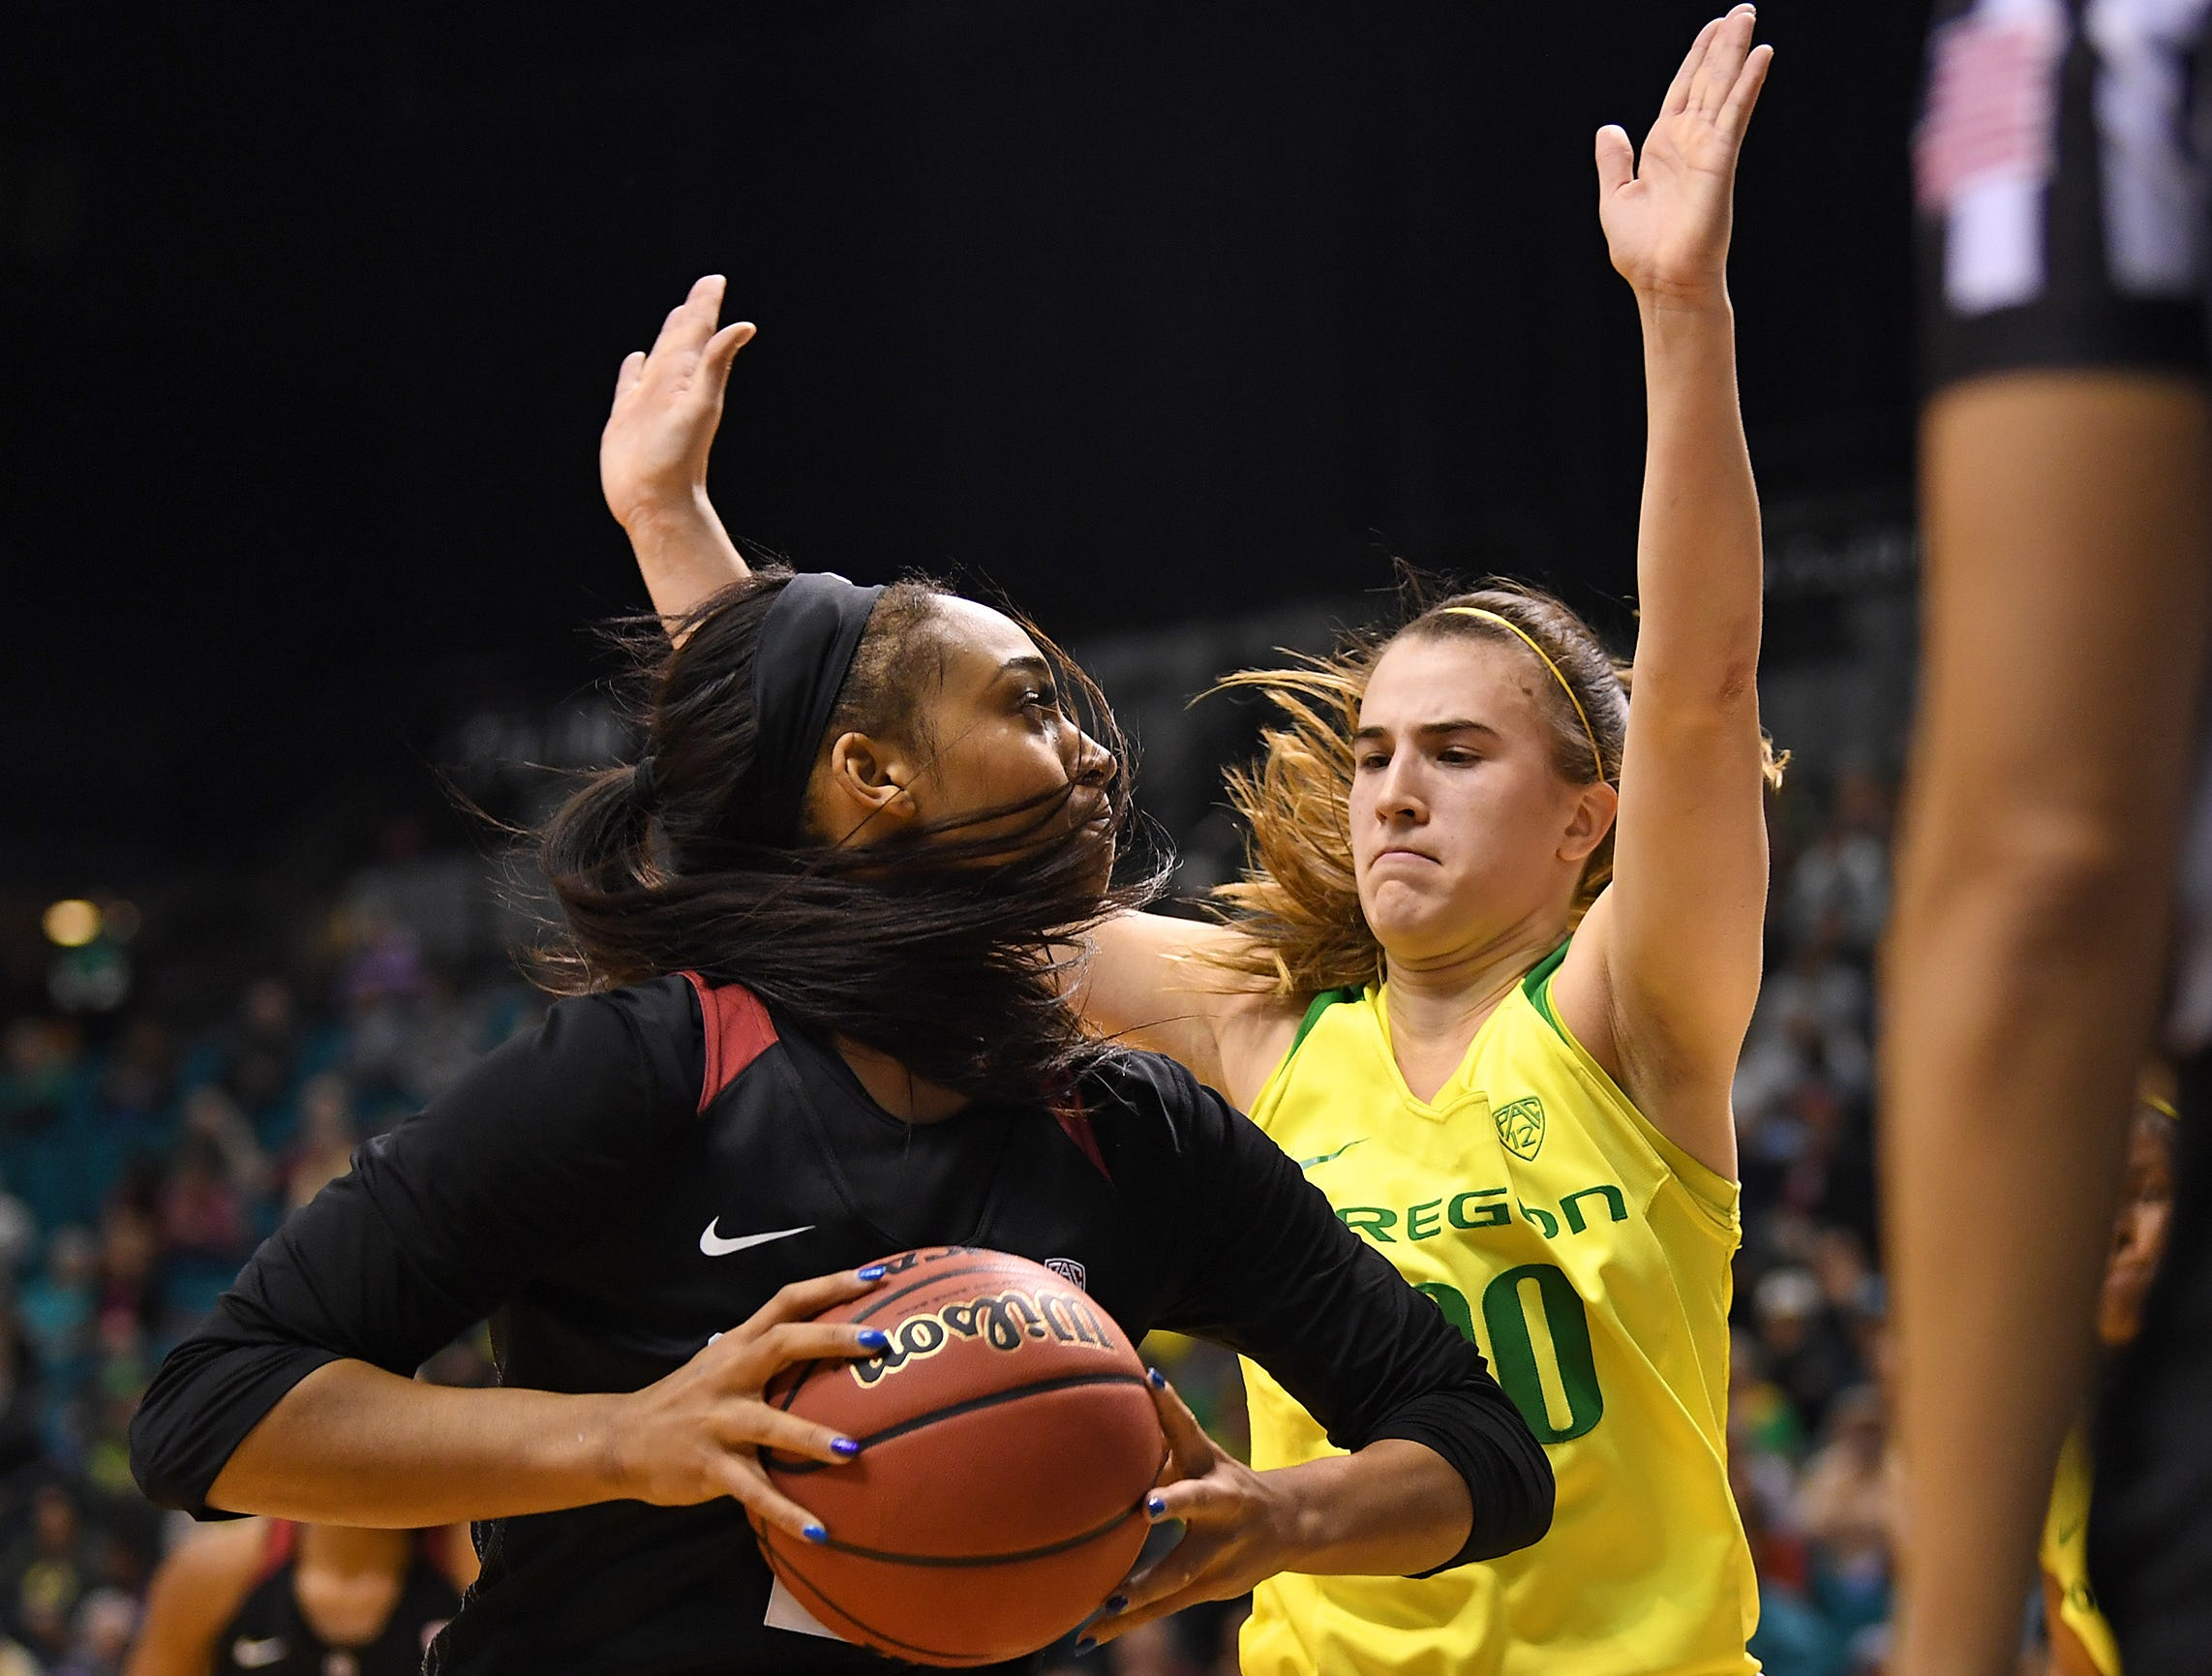 Stanford Cardinal guard DiJonai Carrington (21) drives against Oregon Ducks guard Sabrina Ionescu (20) during the second half of the women's Pac-12 Conference Tournament final at MGM Grand Garden Arena.